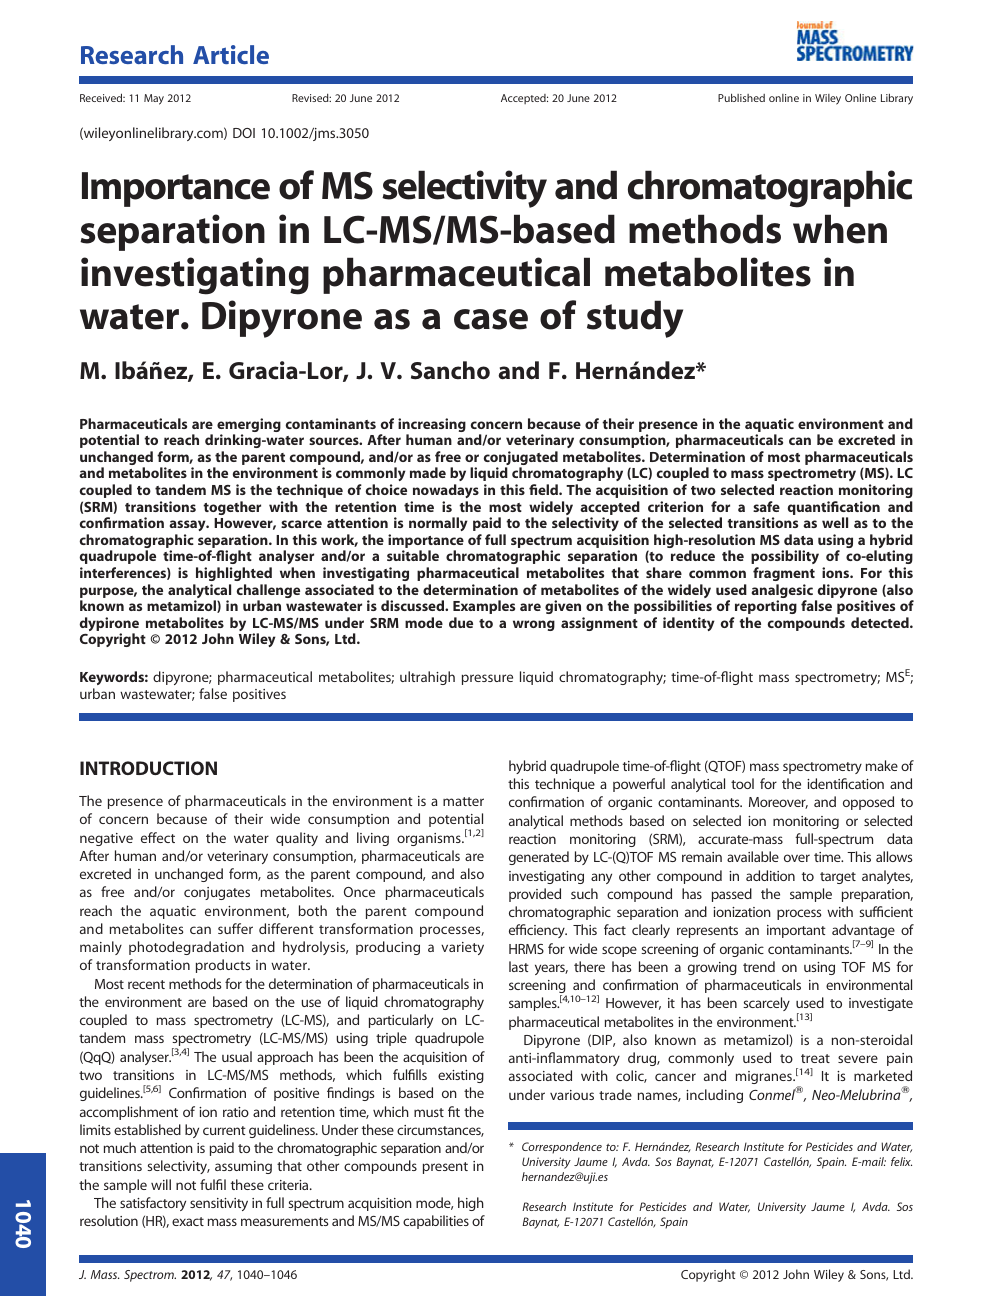 Importance of MS selectivity and chromatographic separation in LC-MS